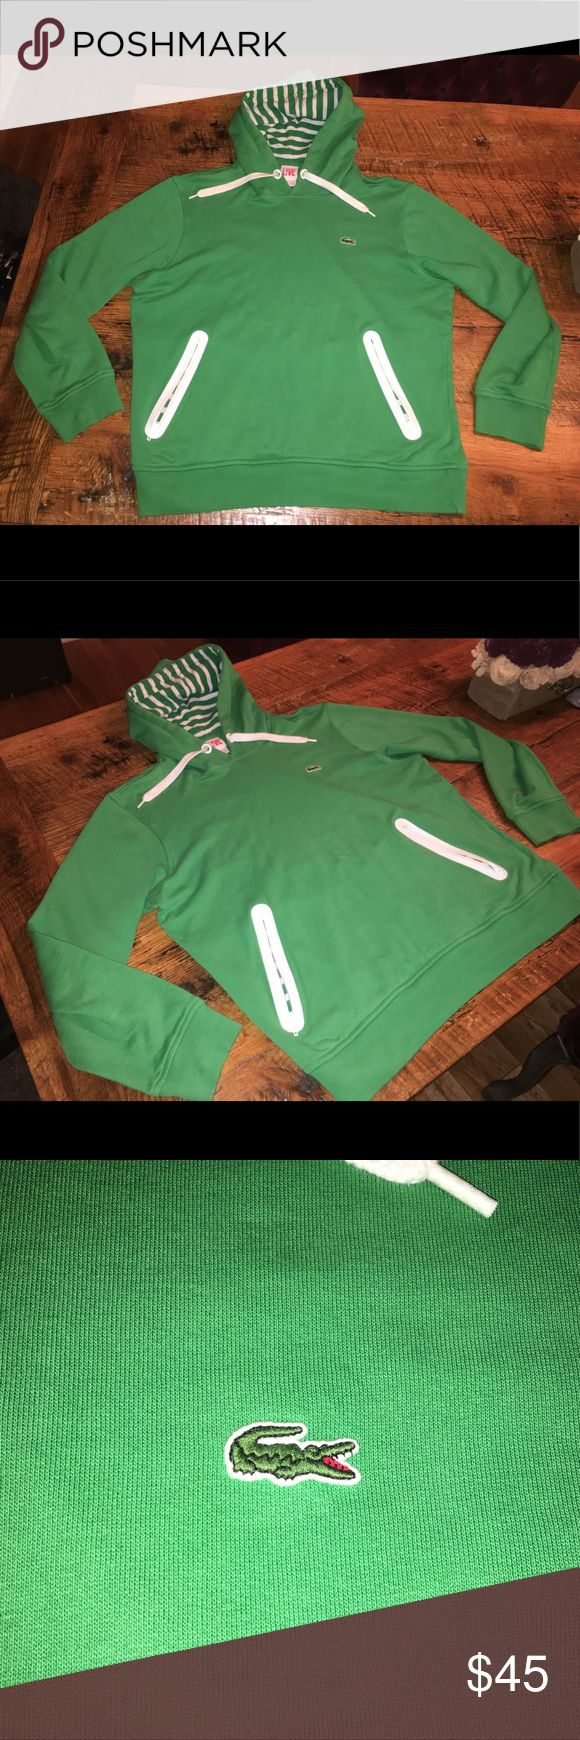 Lacoste Live! Hoodie Sz 6 Excellent condition from smoke free home. Feel free to contact me with any questions. Lacoste Shirts Sweatshirts & Hoodies